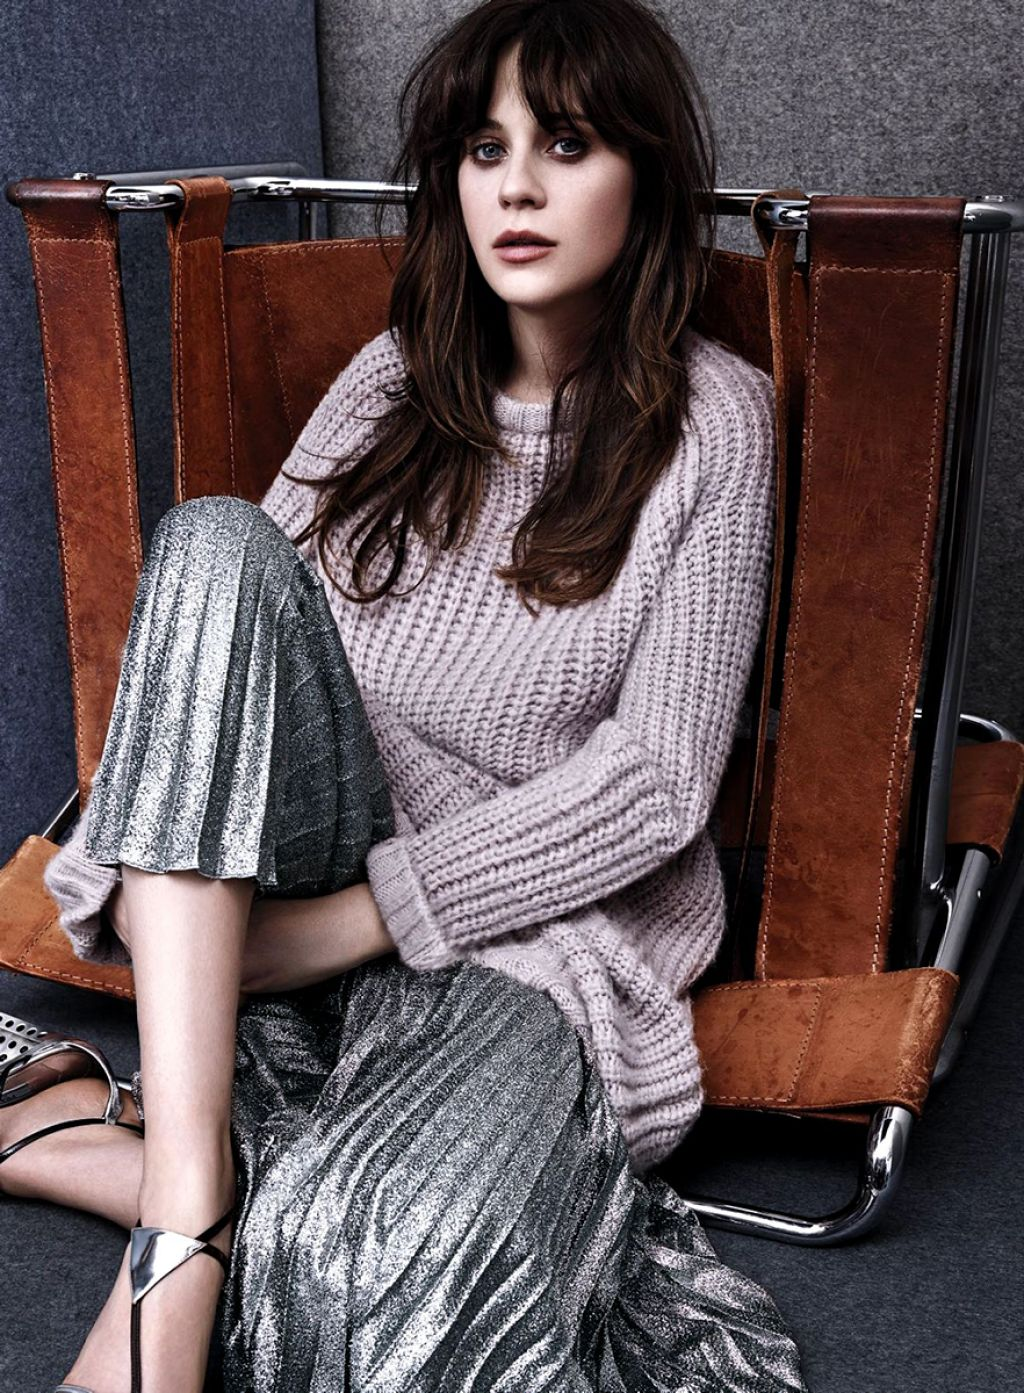 Zooey Deschanel Photoshoot for InStyle Magazine August 2014 Issue